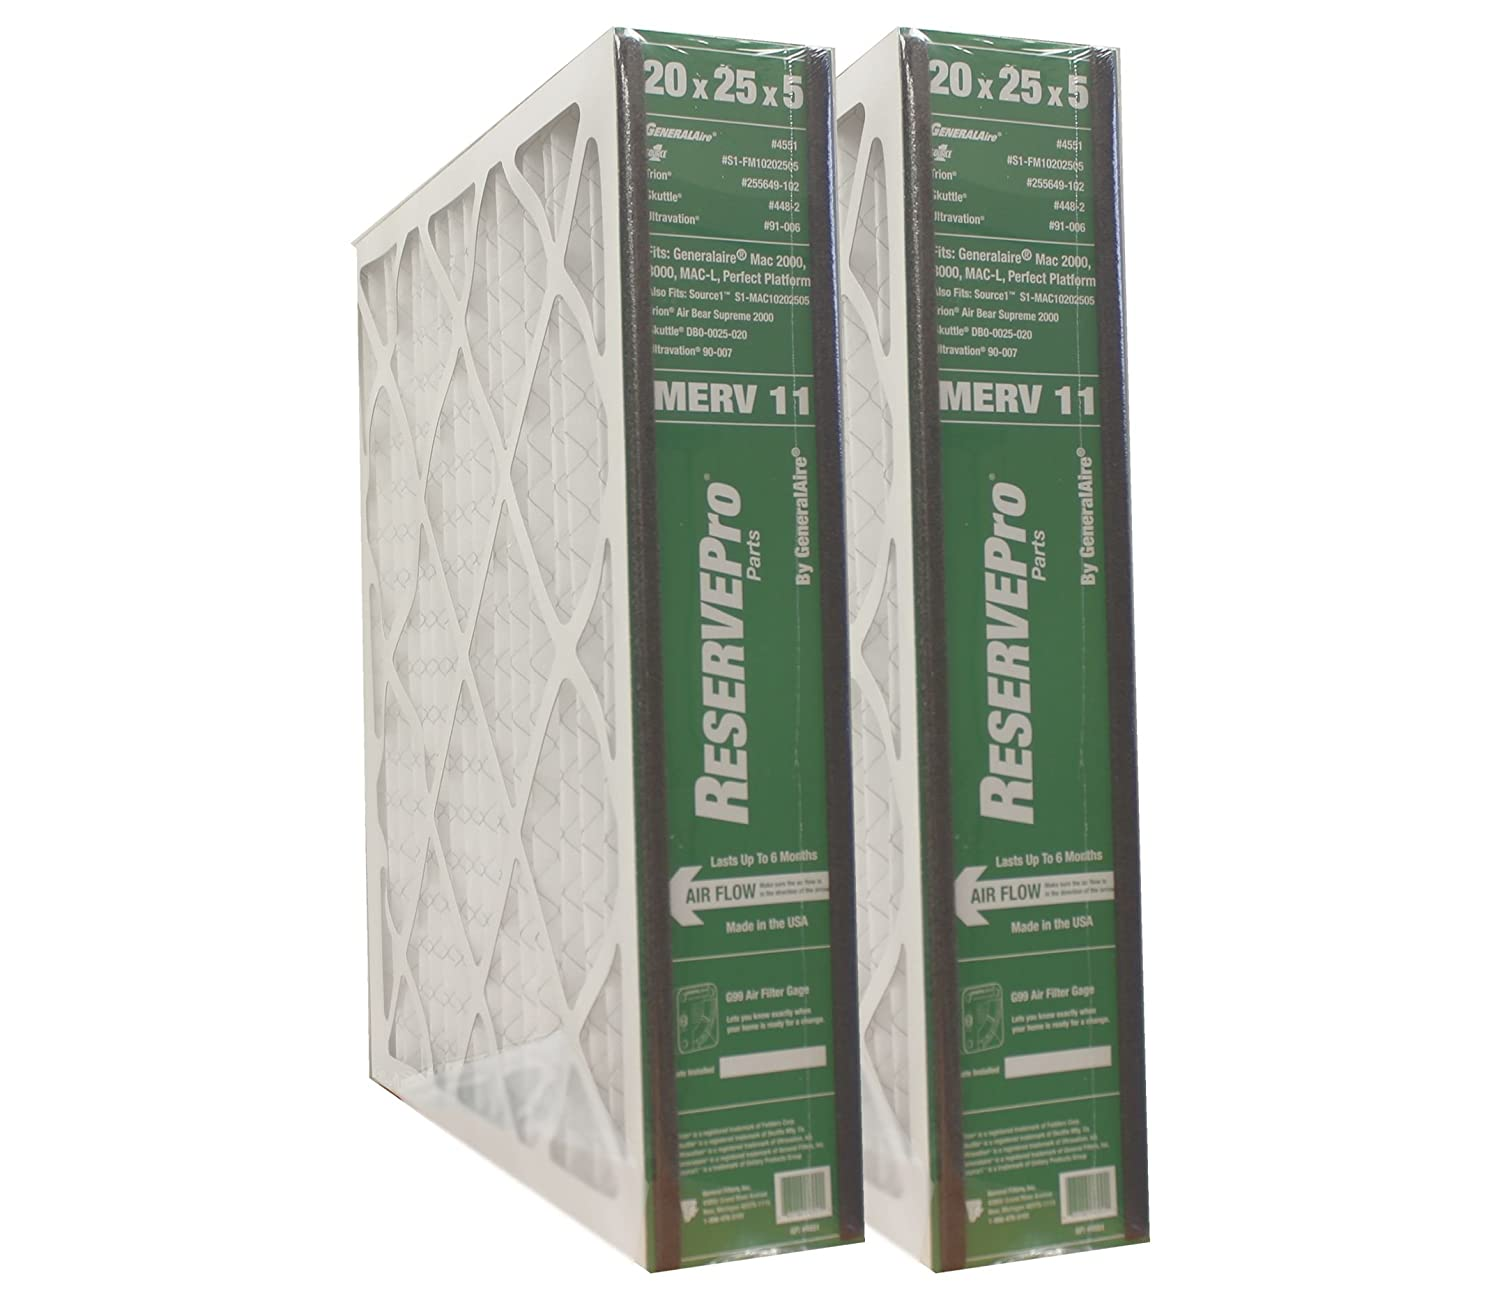 """GeneralAire # 4551 for 4501 ReservePro 20x25x5 furnace filter, Actual Size:19 5/8"""" x 24 3/16"""" x 4 15/16"""" - Case of 2 Filters"""